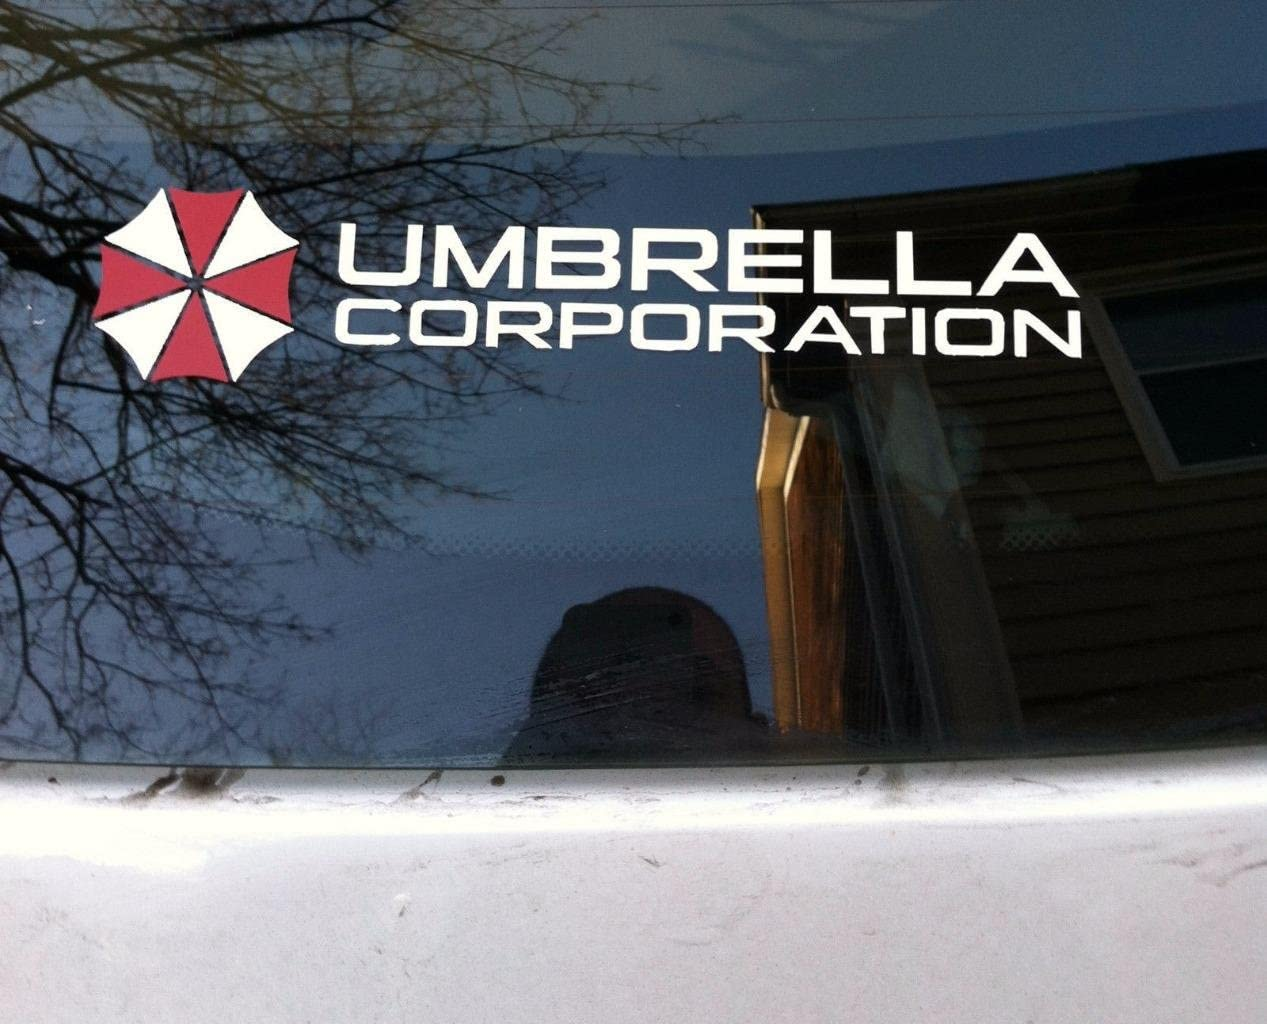 Umbrella Resident Evil Corporation Vinyl Decal Stickers Size 8 X 2